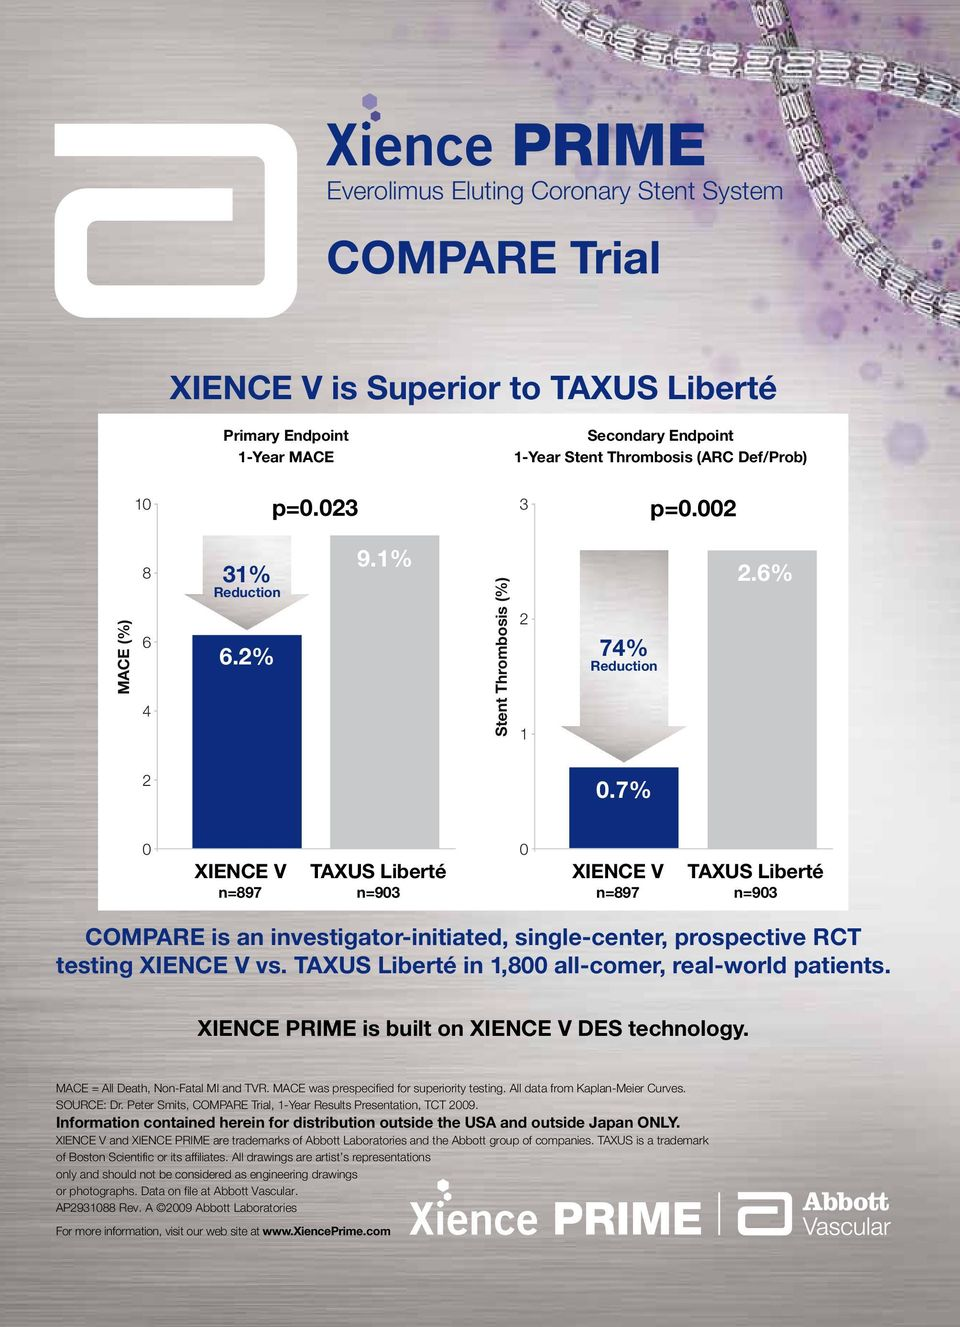 7% 0 XIENCE V TAXUS Liberté n=897 n=903 0 XIENCE V TAXUS Liberté n=897 n=903 COMPARE is an investigator-initiated, single-center, prospective RCT testing XIENCE V vs.